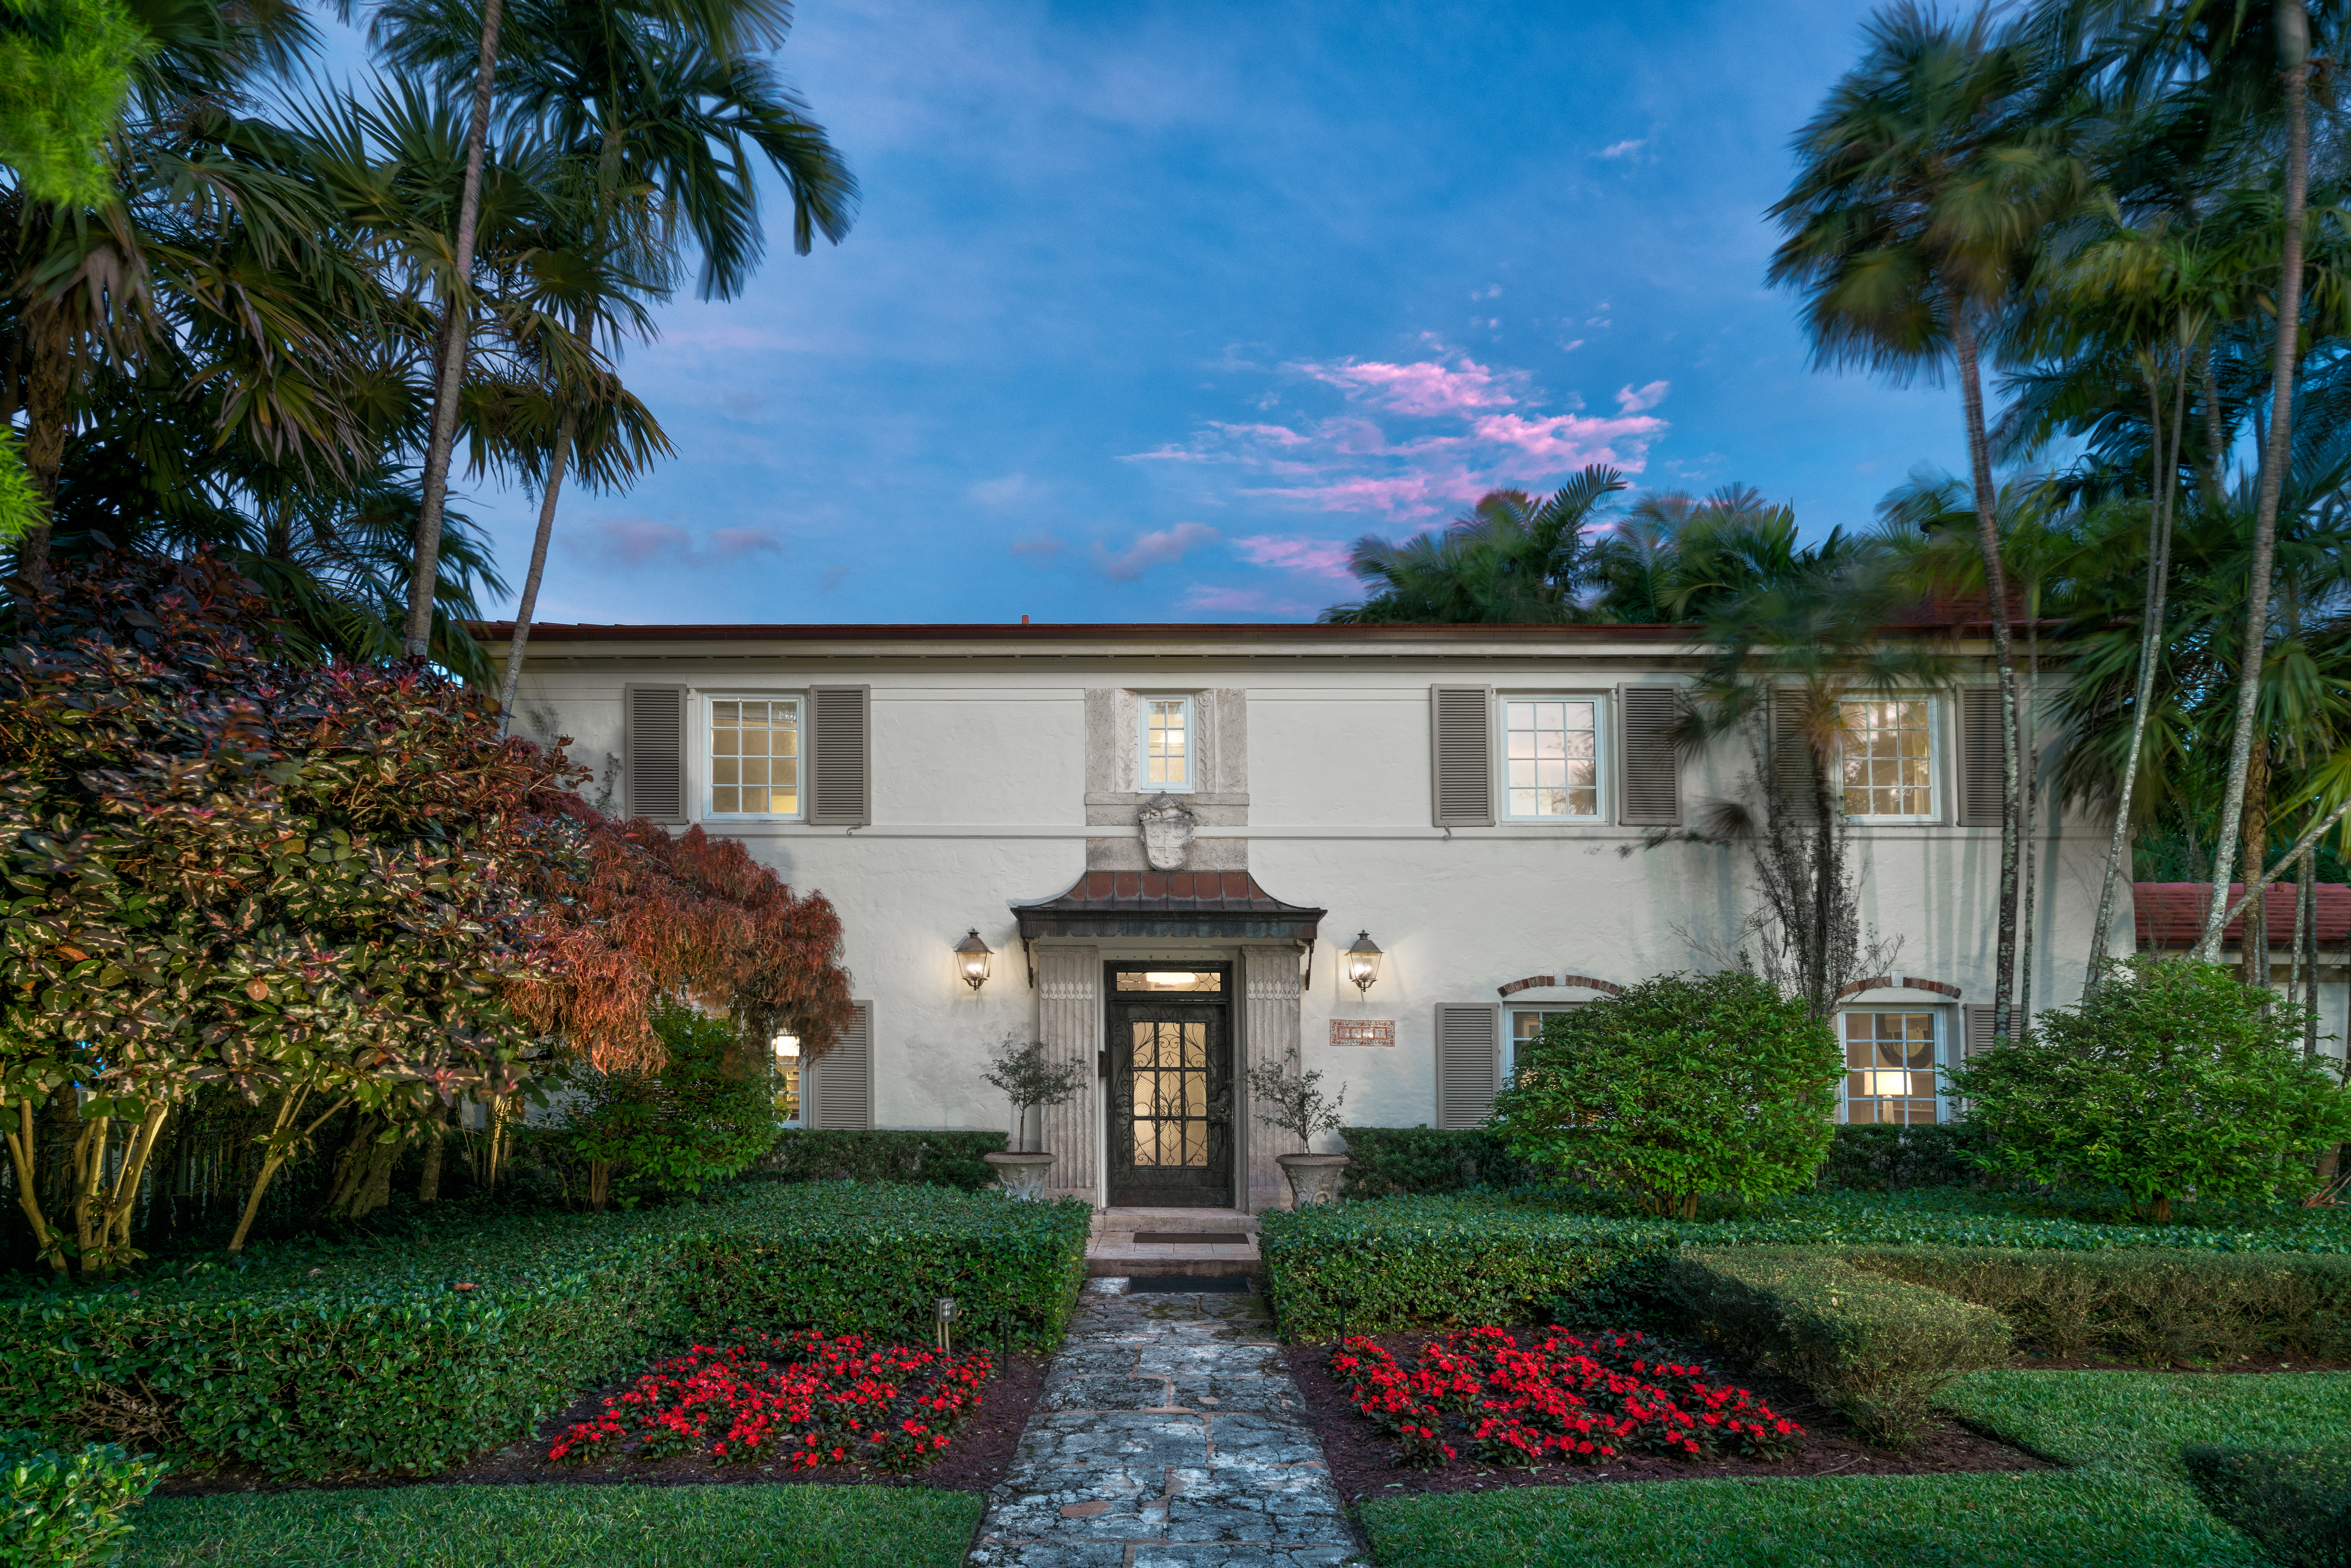 open-houses property at 2517 Granada Blvd